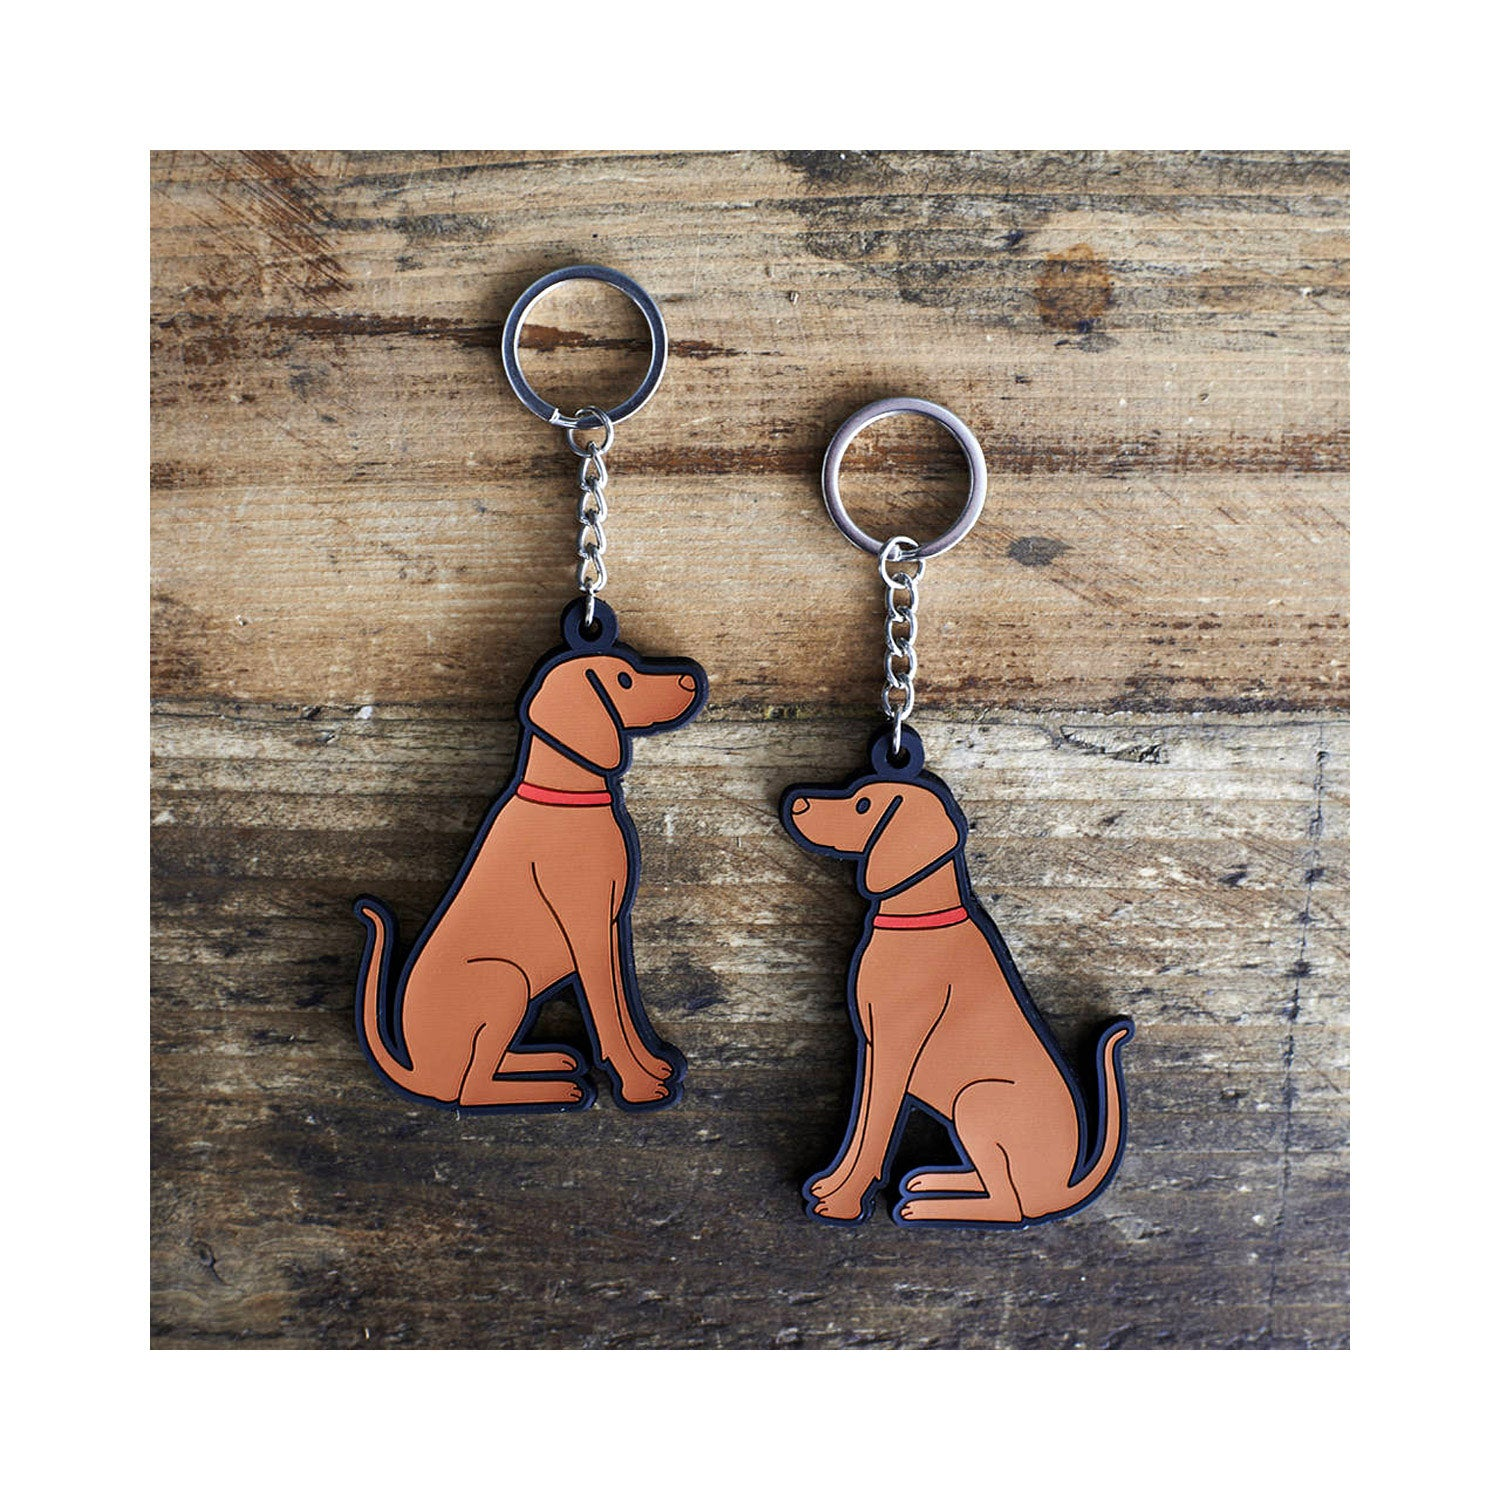 Dog Lover Gifts available at Dog Krazy Gifts - Joe The Vizsla Keyring - part of the Sweet William range available from Dog Krazy Gifts